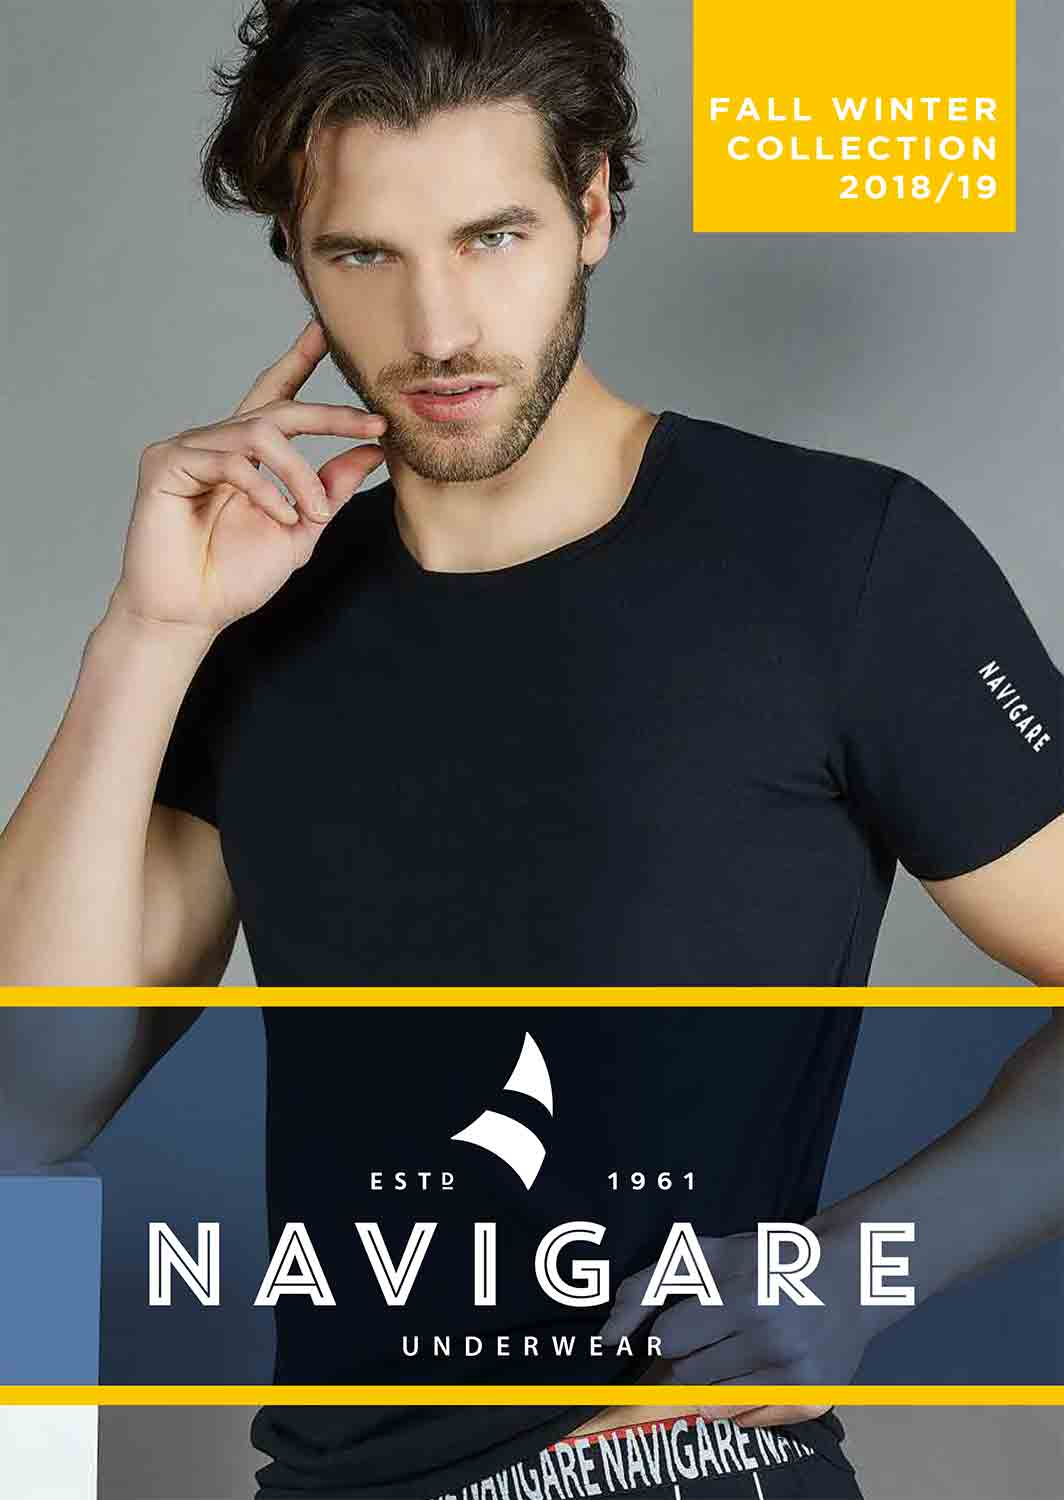 NAVIGARE FALL WINTER 2018/19